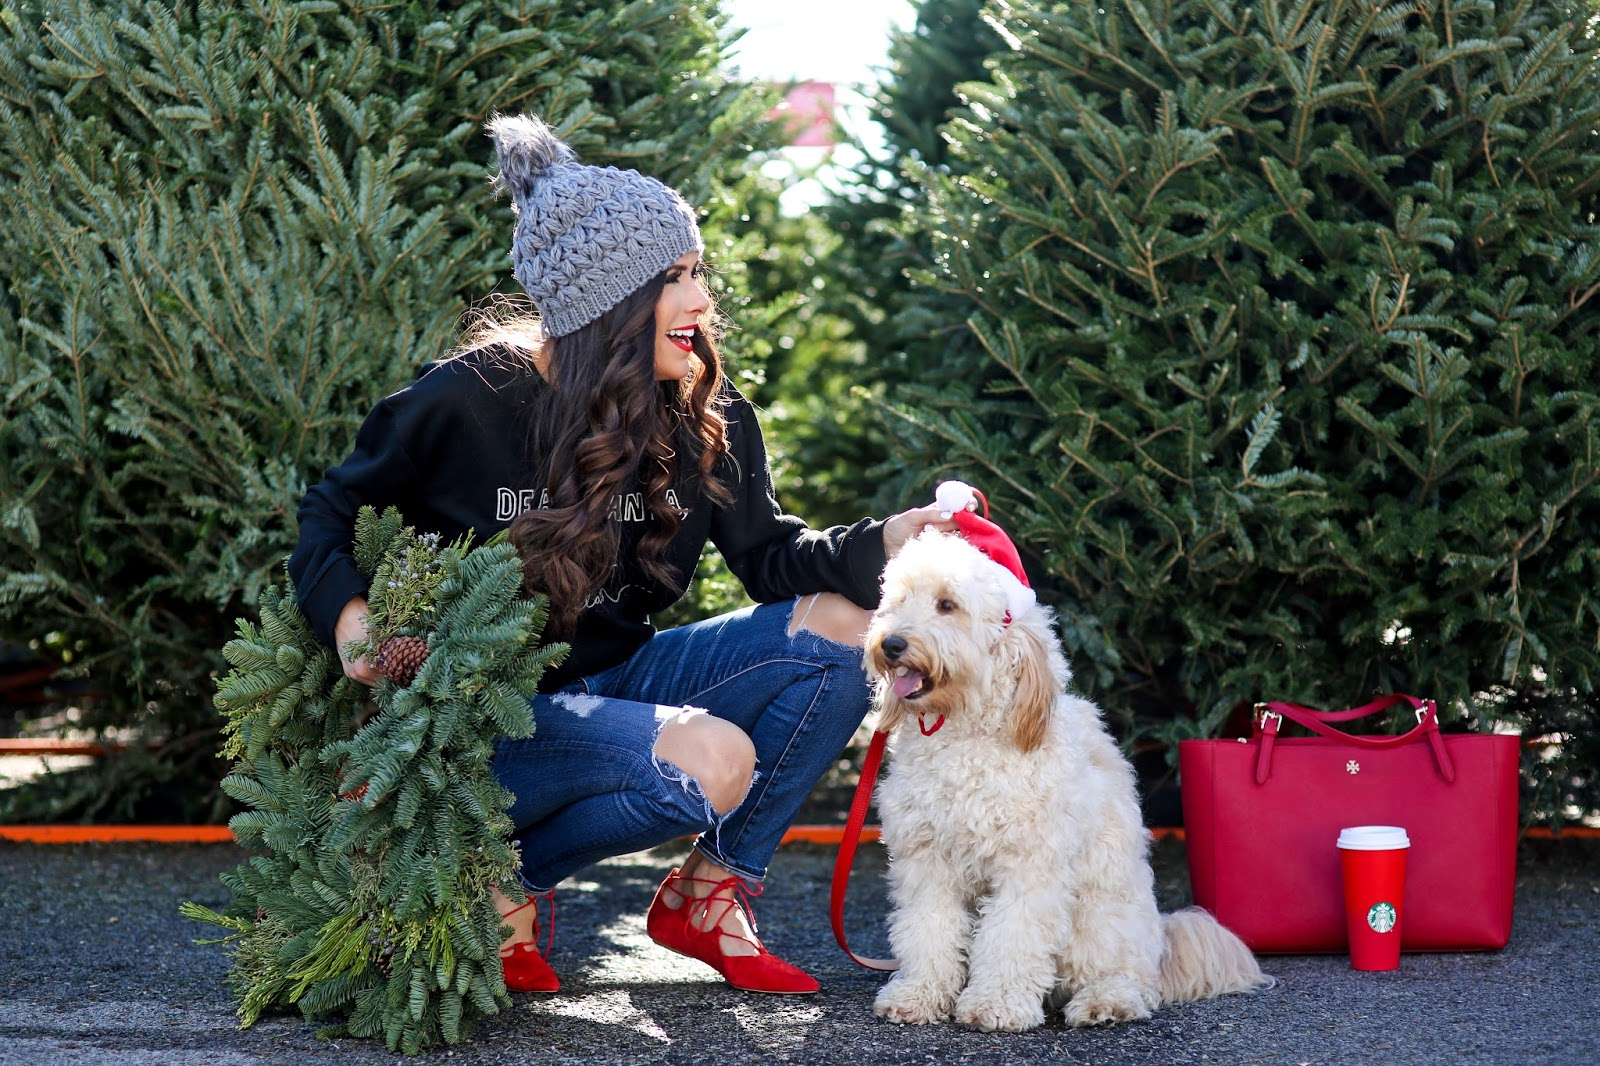 emily gemma blog, the sweetest thing blog, what to wear casual christmas dinner, what to wear during the holidays comfortable, winter fashion ootd pinterest, winter fashion, beanie with pom pom, santa sweatshirts cute, golden doodle f1b, fitz gemma, under the sun tulsa, wreath shopping tulsa, AG jeans on sale, lace up flats topshop, topshop red flats, santa sweatshirt, dear santa i can explain sweatshirt, kate spade stacked rings, christmas photo idea with dog, dog with wreath around neck photo, tory burch york tote in red, tulsa fashion blogger, love always name place necklace cursive, arrow necklace jennifer zeuner, brunette balayage, best curling wand for long layers